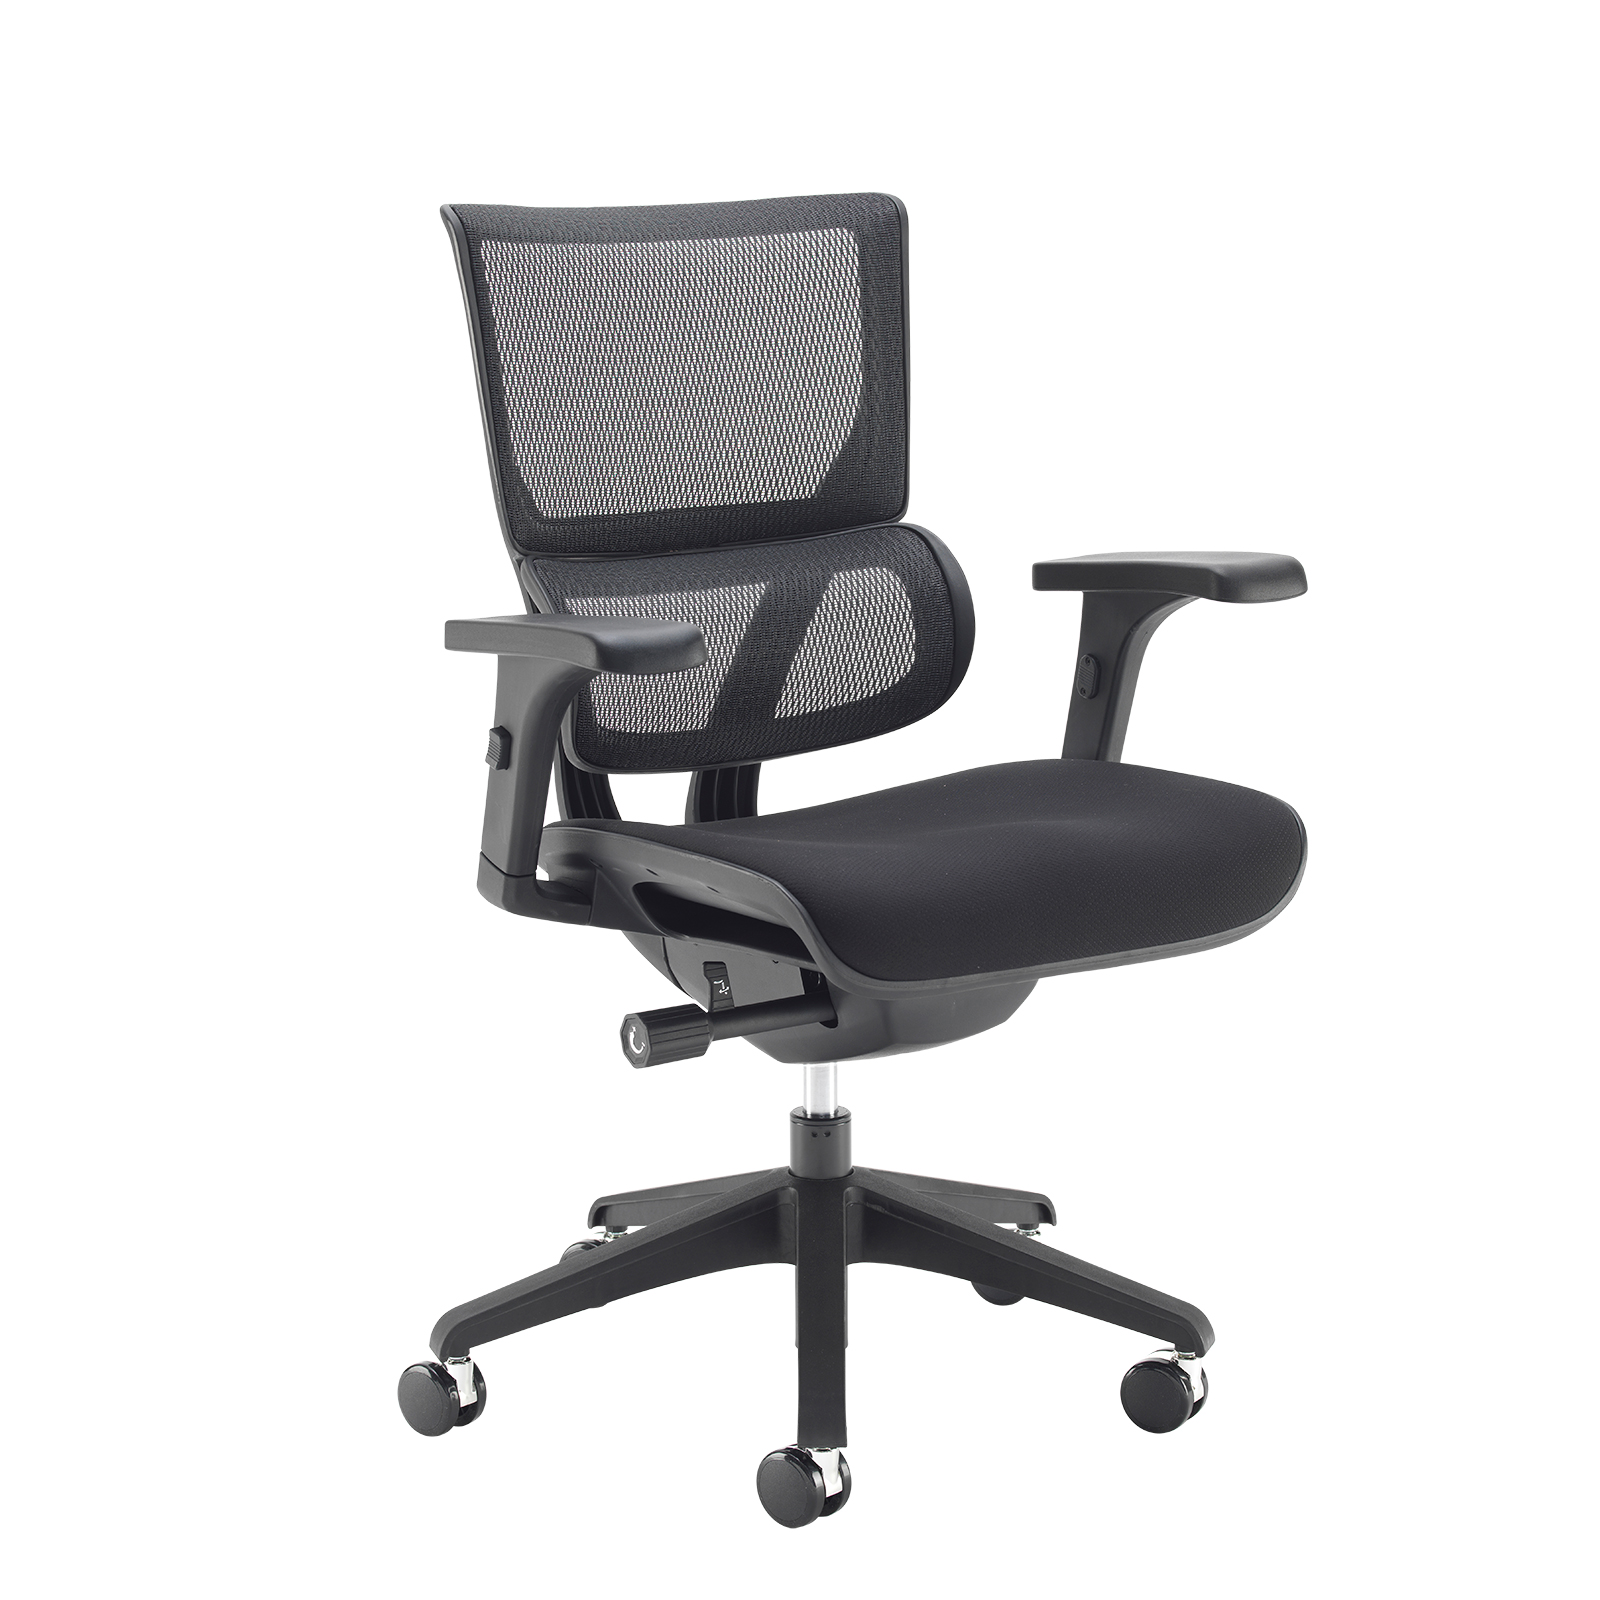 Desk Chairs Dynamo mesh back posture chair